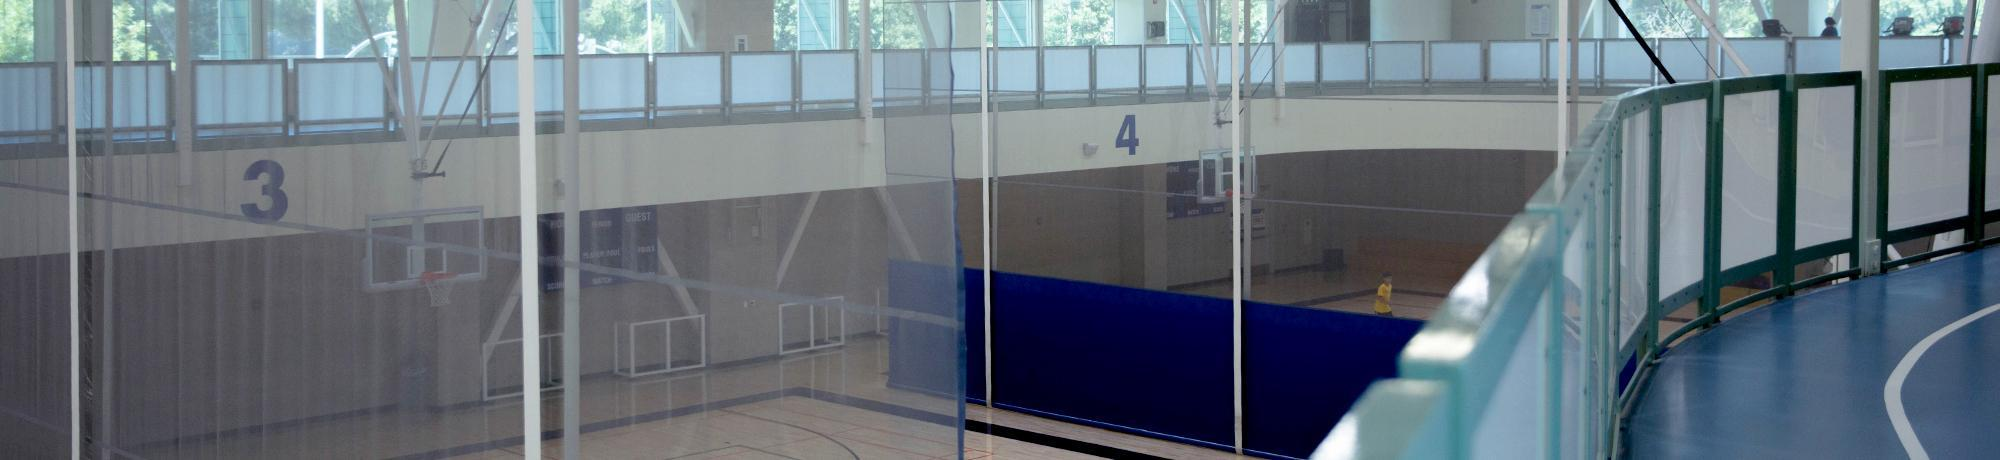 Photo of empty running track and basketball court